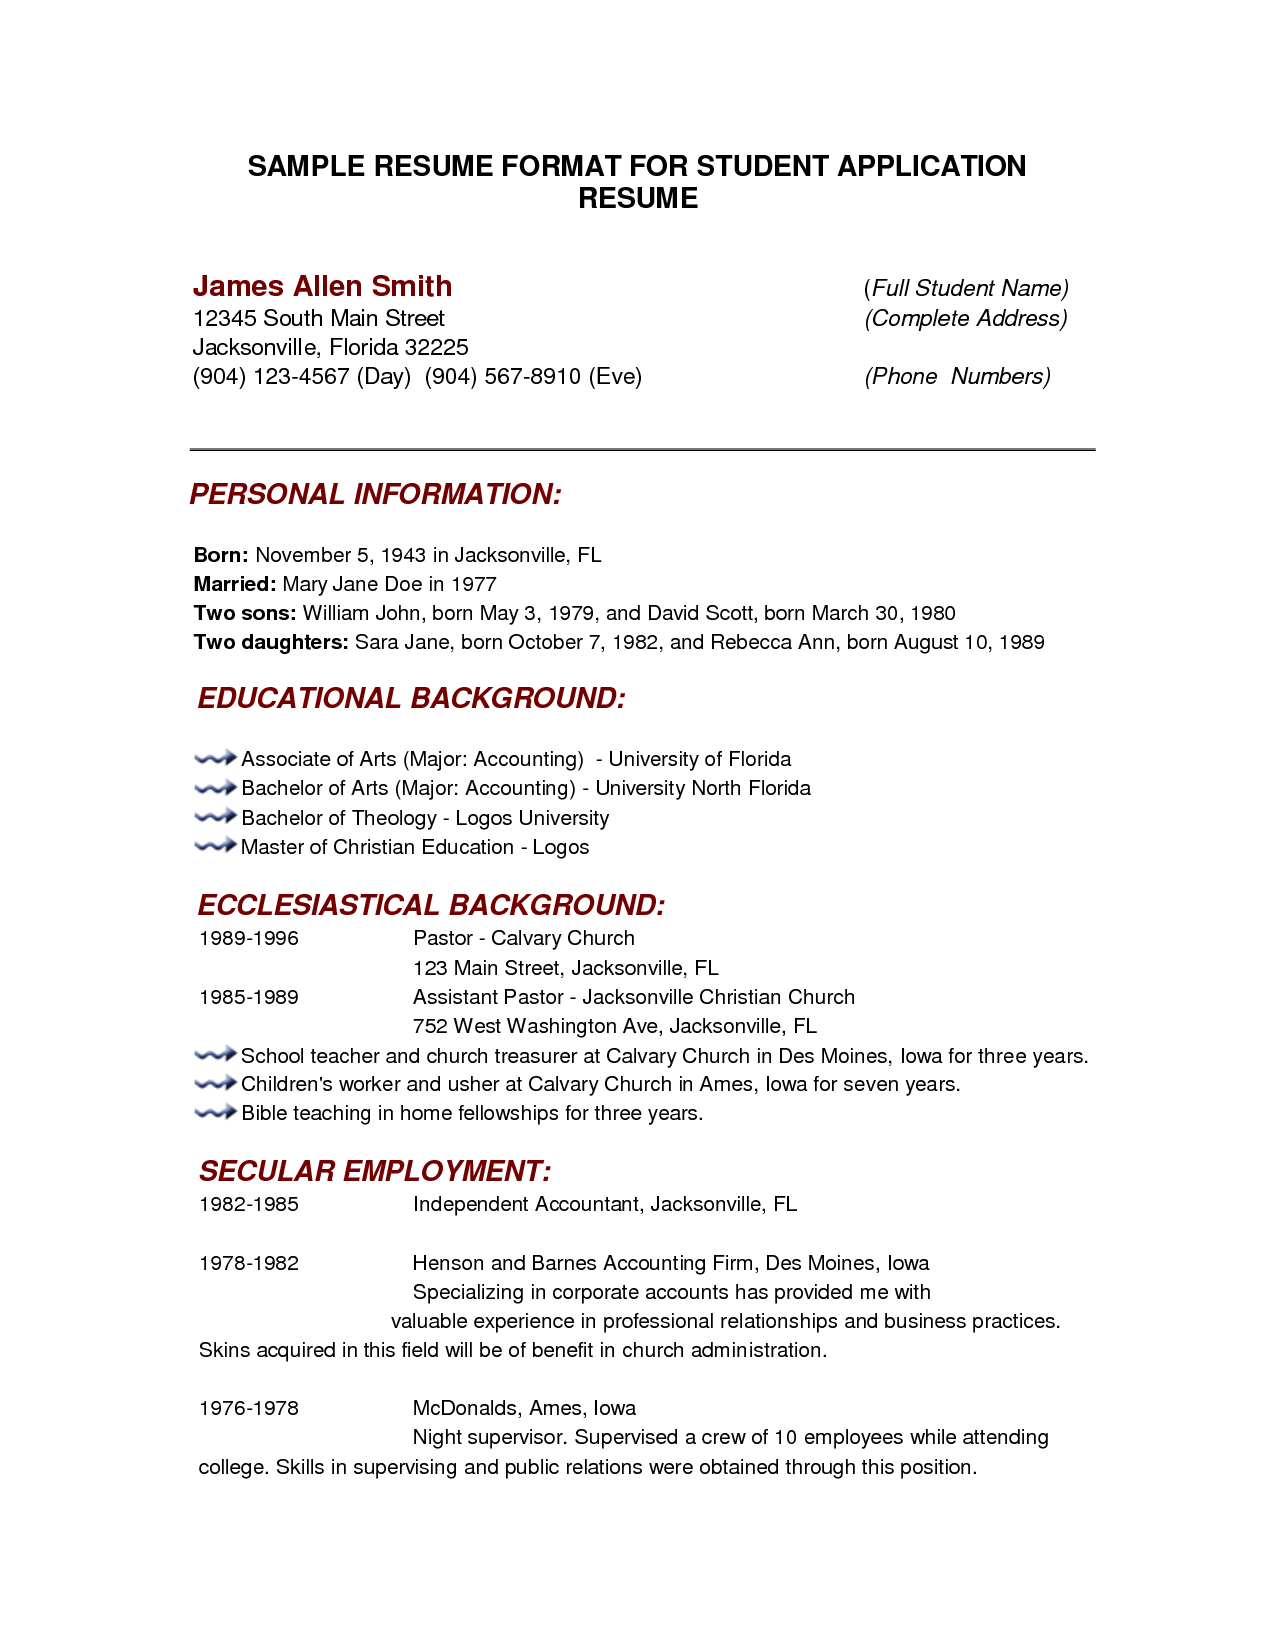 Apa Resume Template Pinjobresume On Resume Career Termplate Free  Pinterest